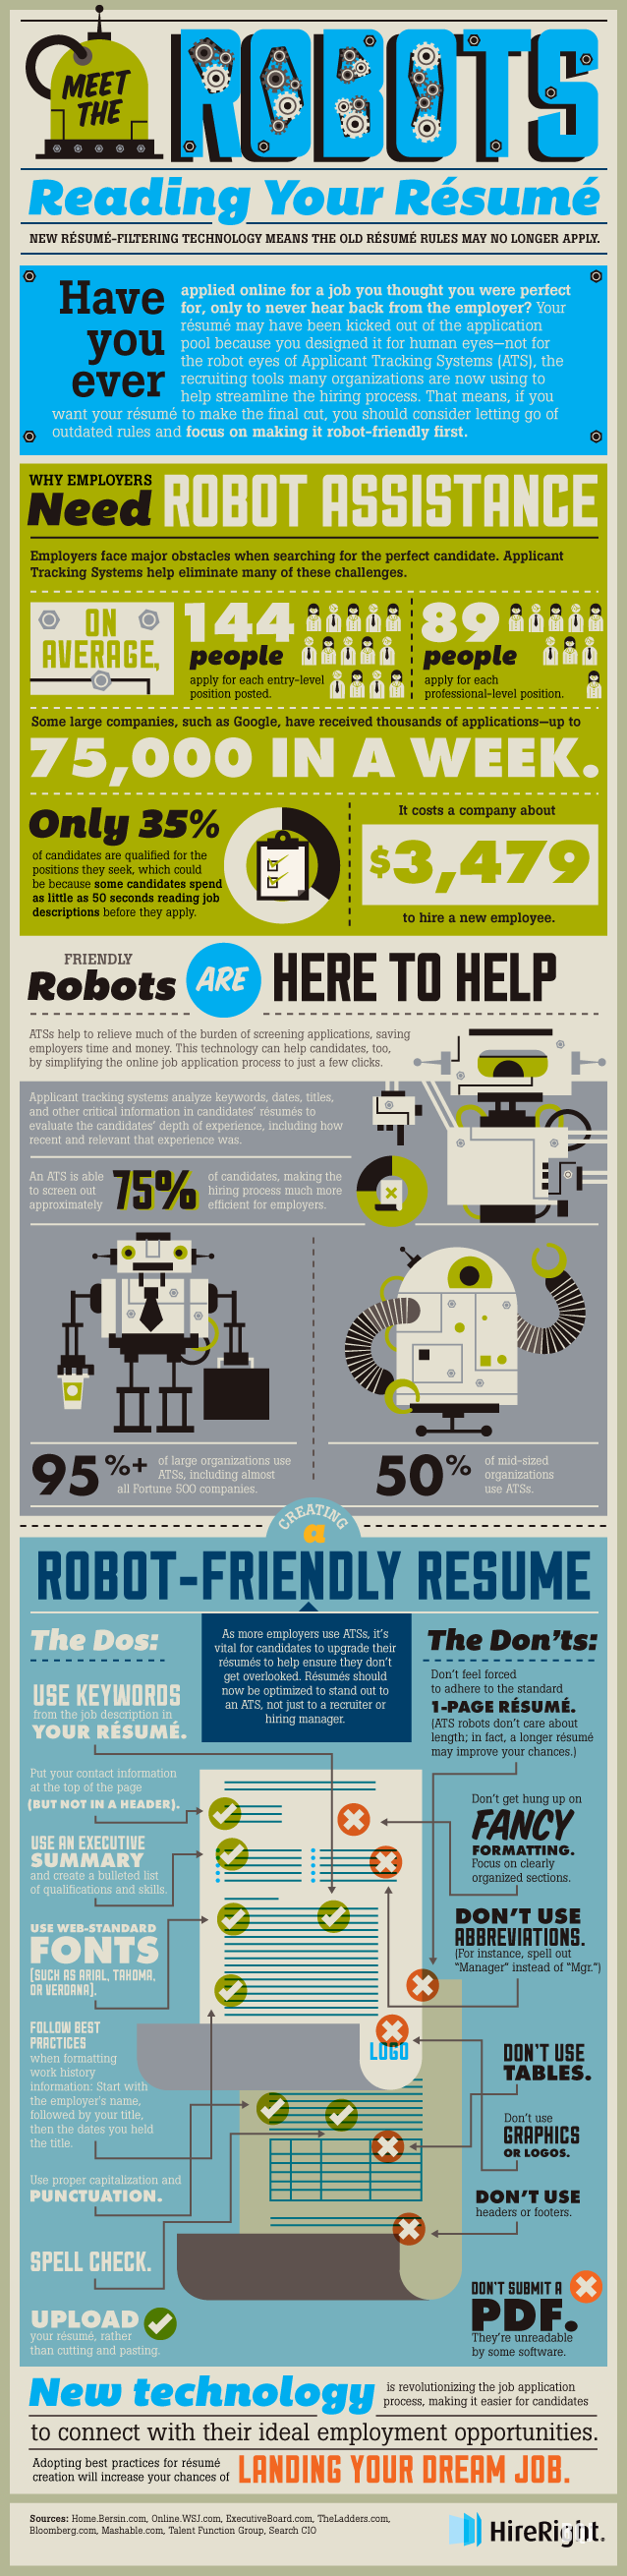 robots-reading-resume-ats-recruiting-infographic1